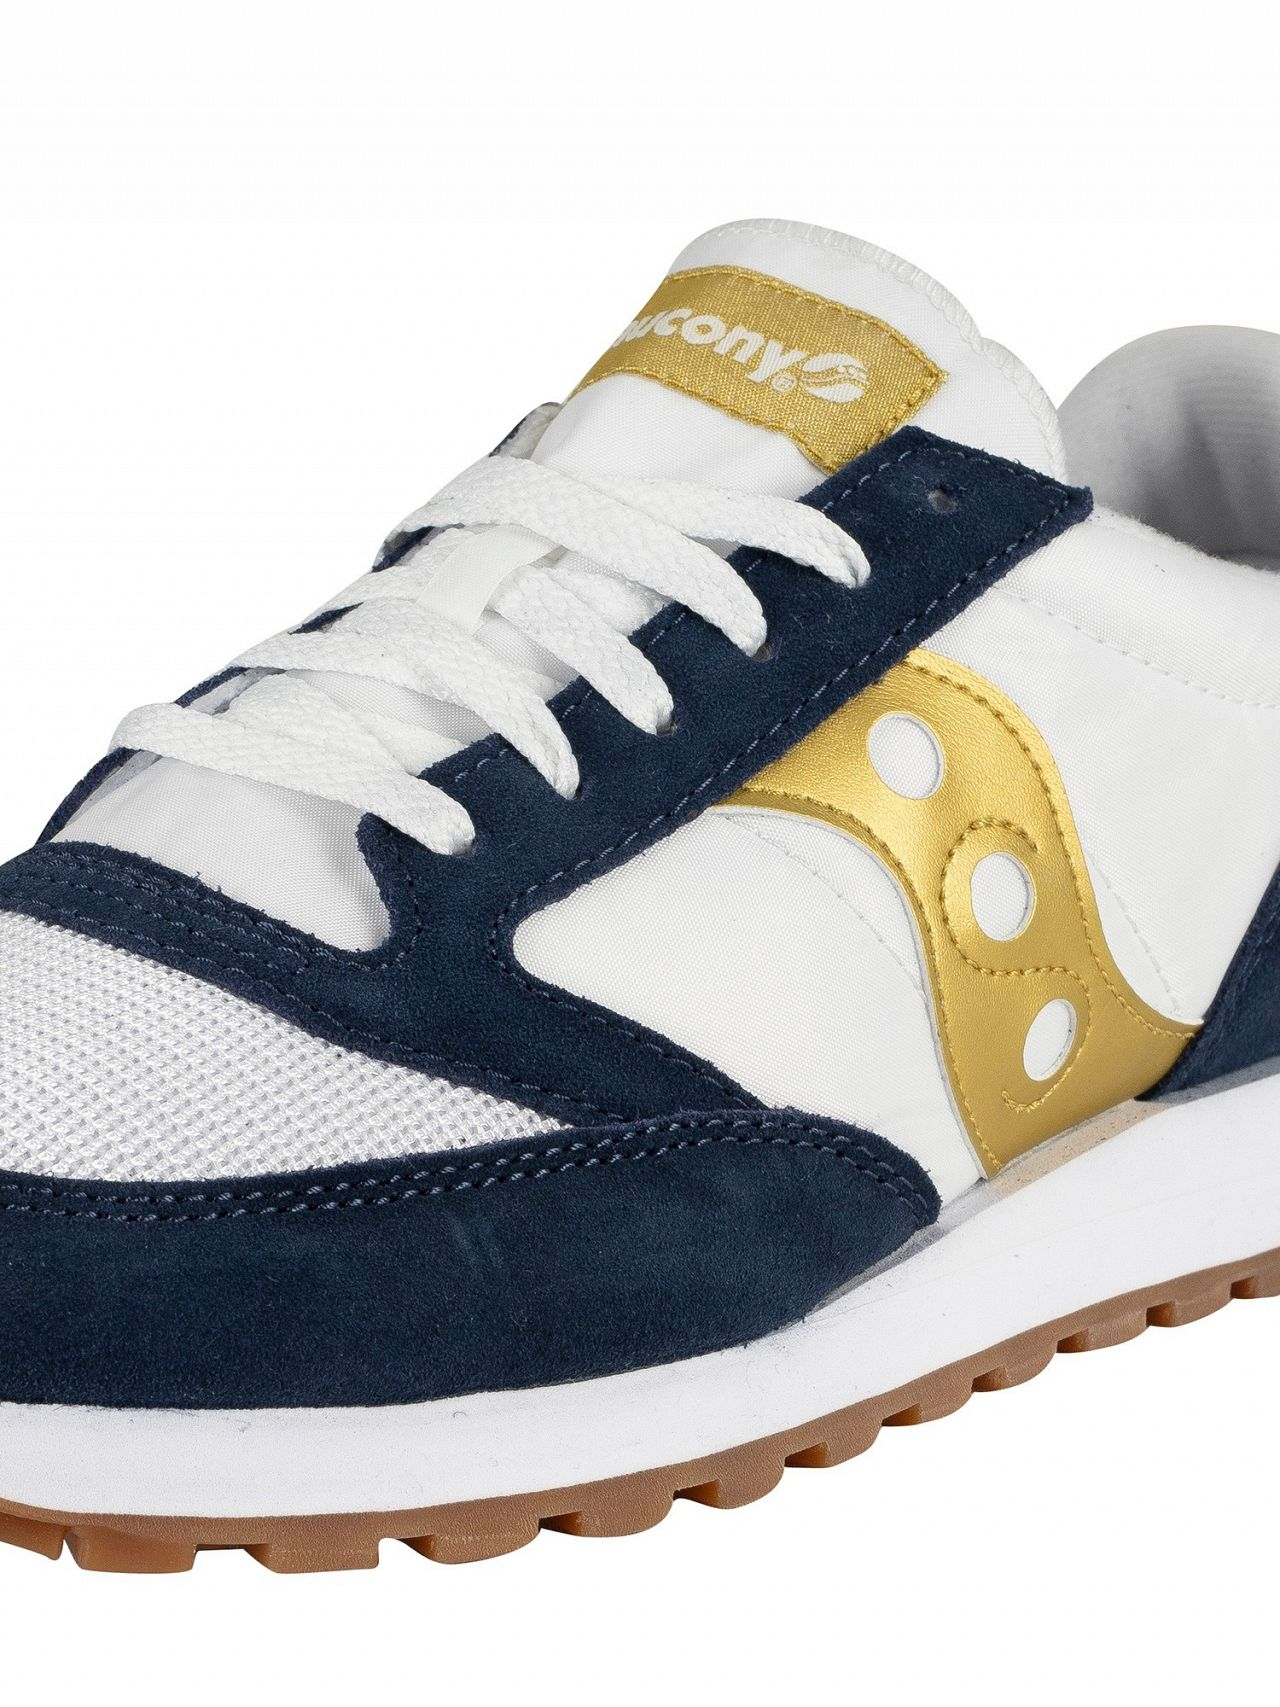 756bdbf0 Saucony White/Navy/Gold Jazz Original Vintage Trainers